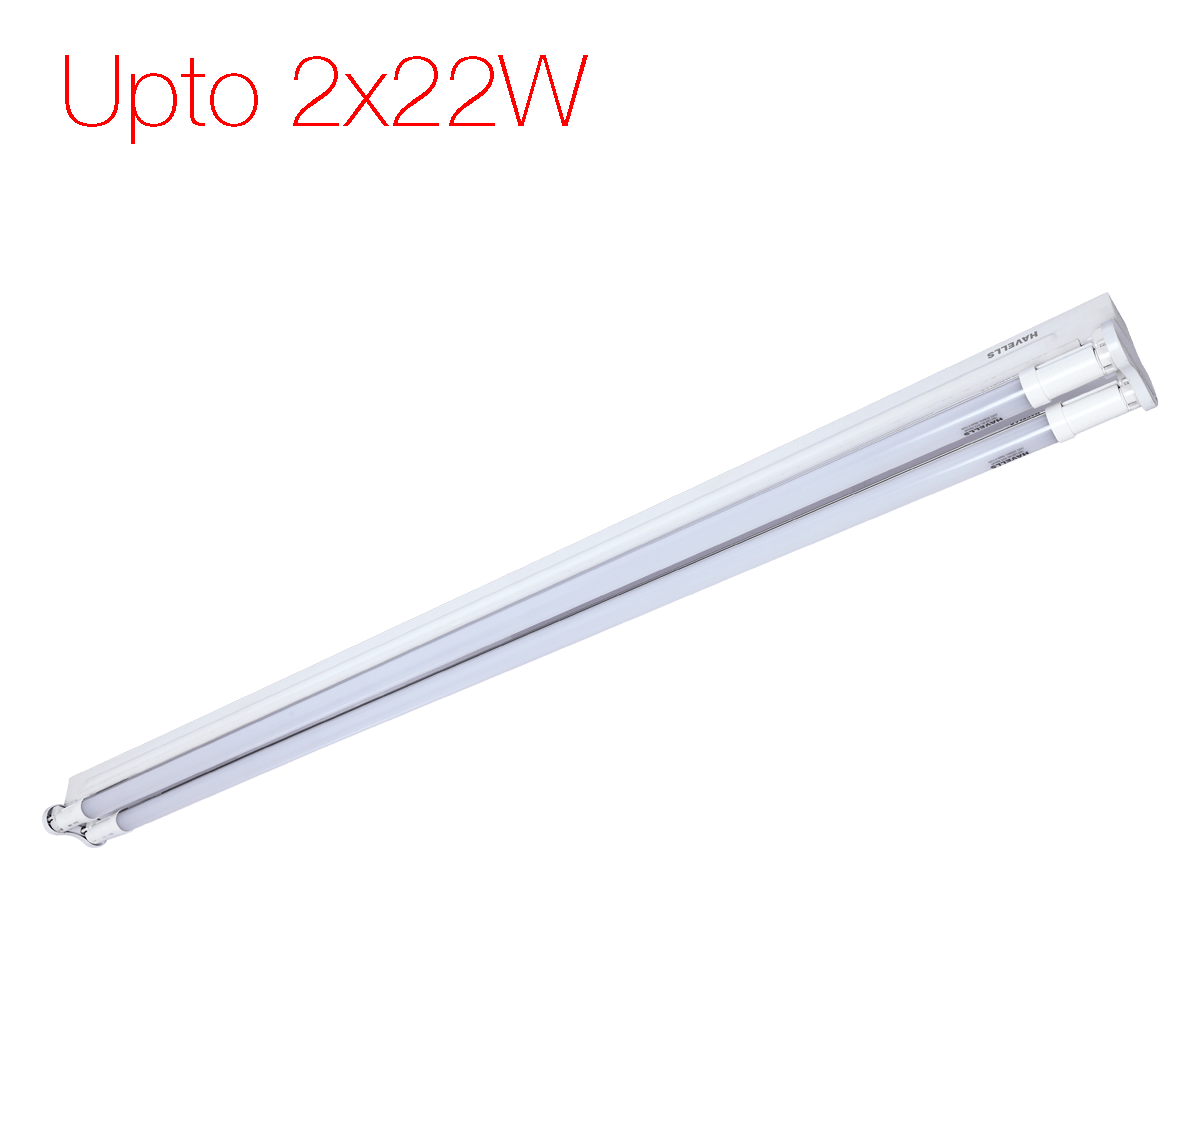 Led Regal Havells Industrial Led Luminaires Regal Batten Led Havells India